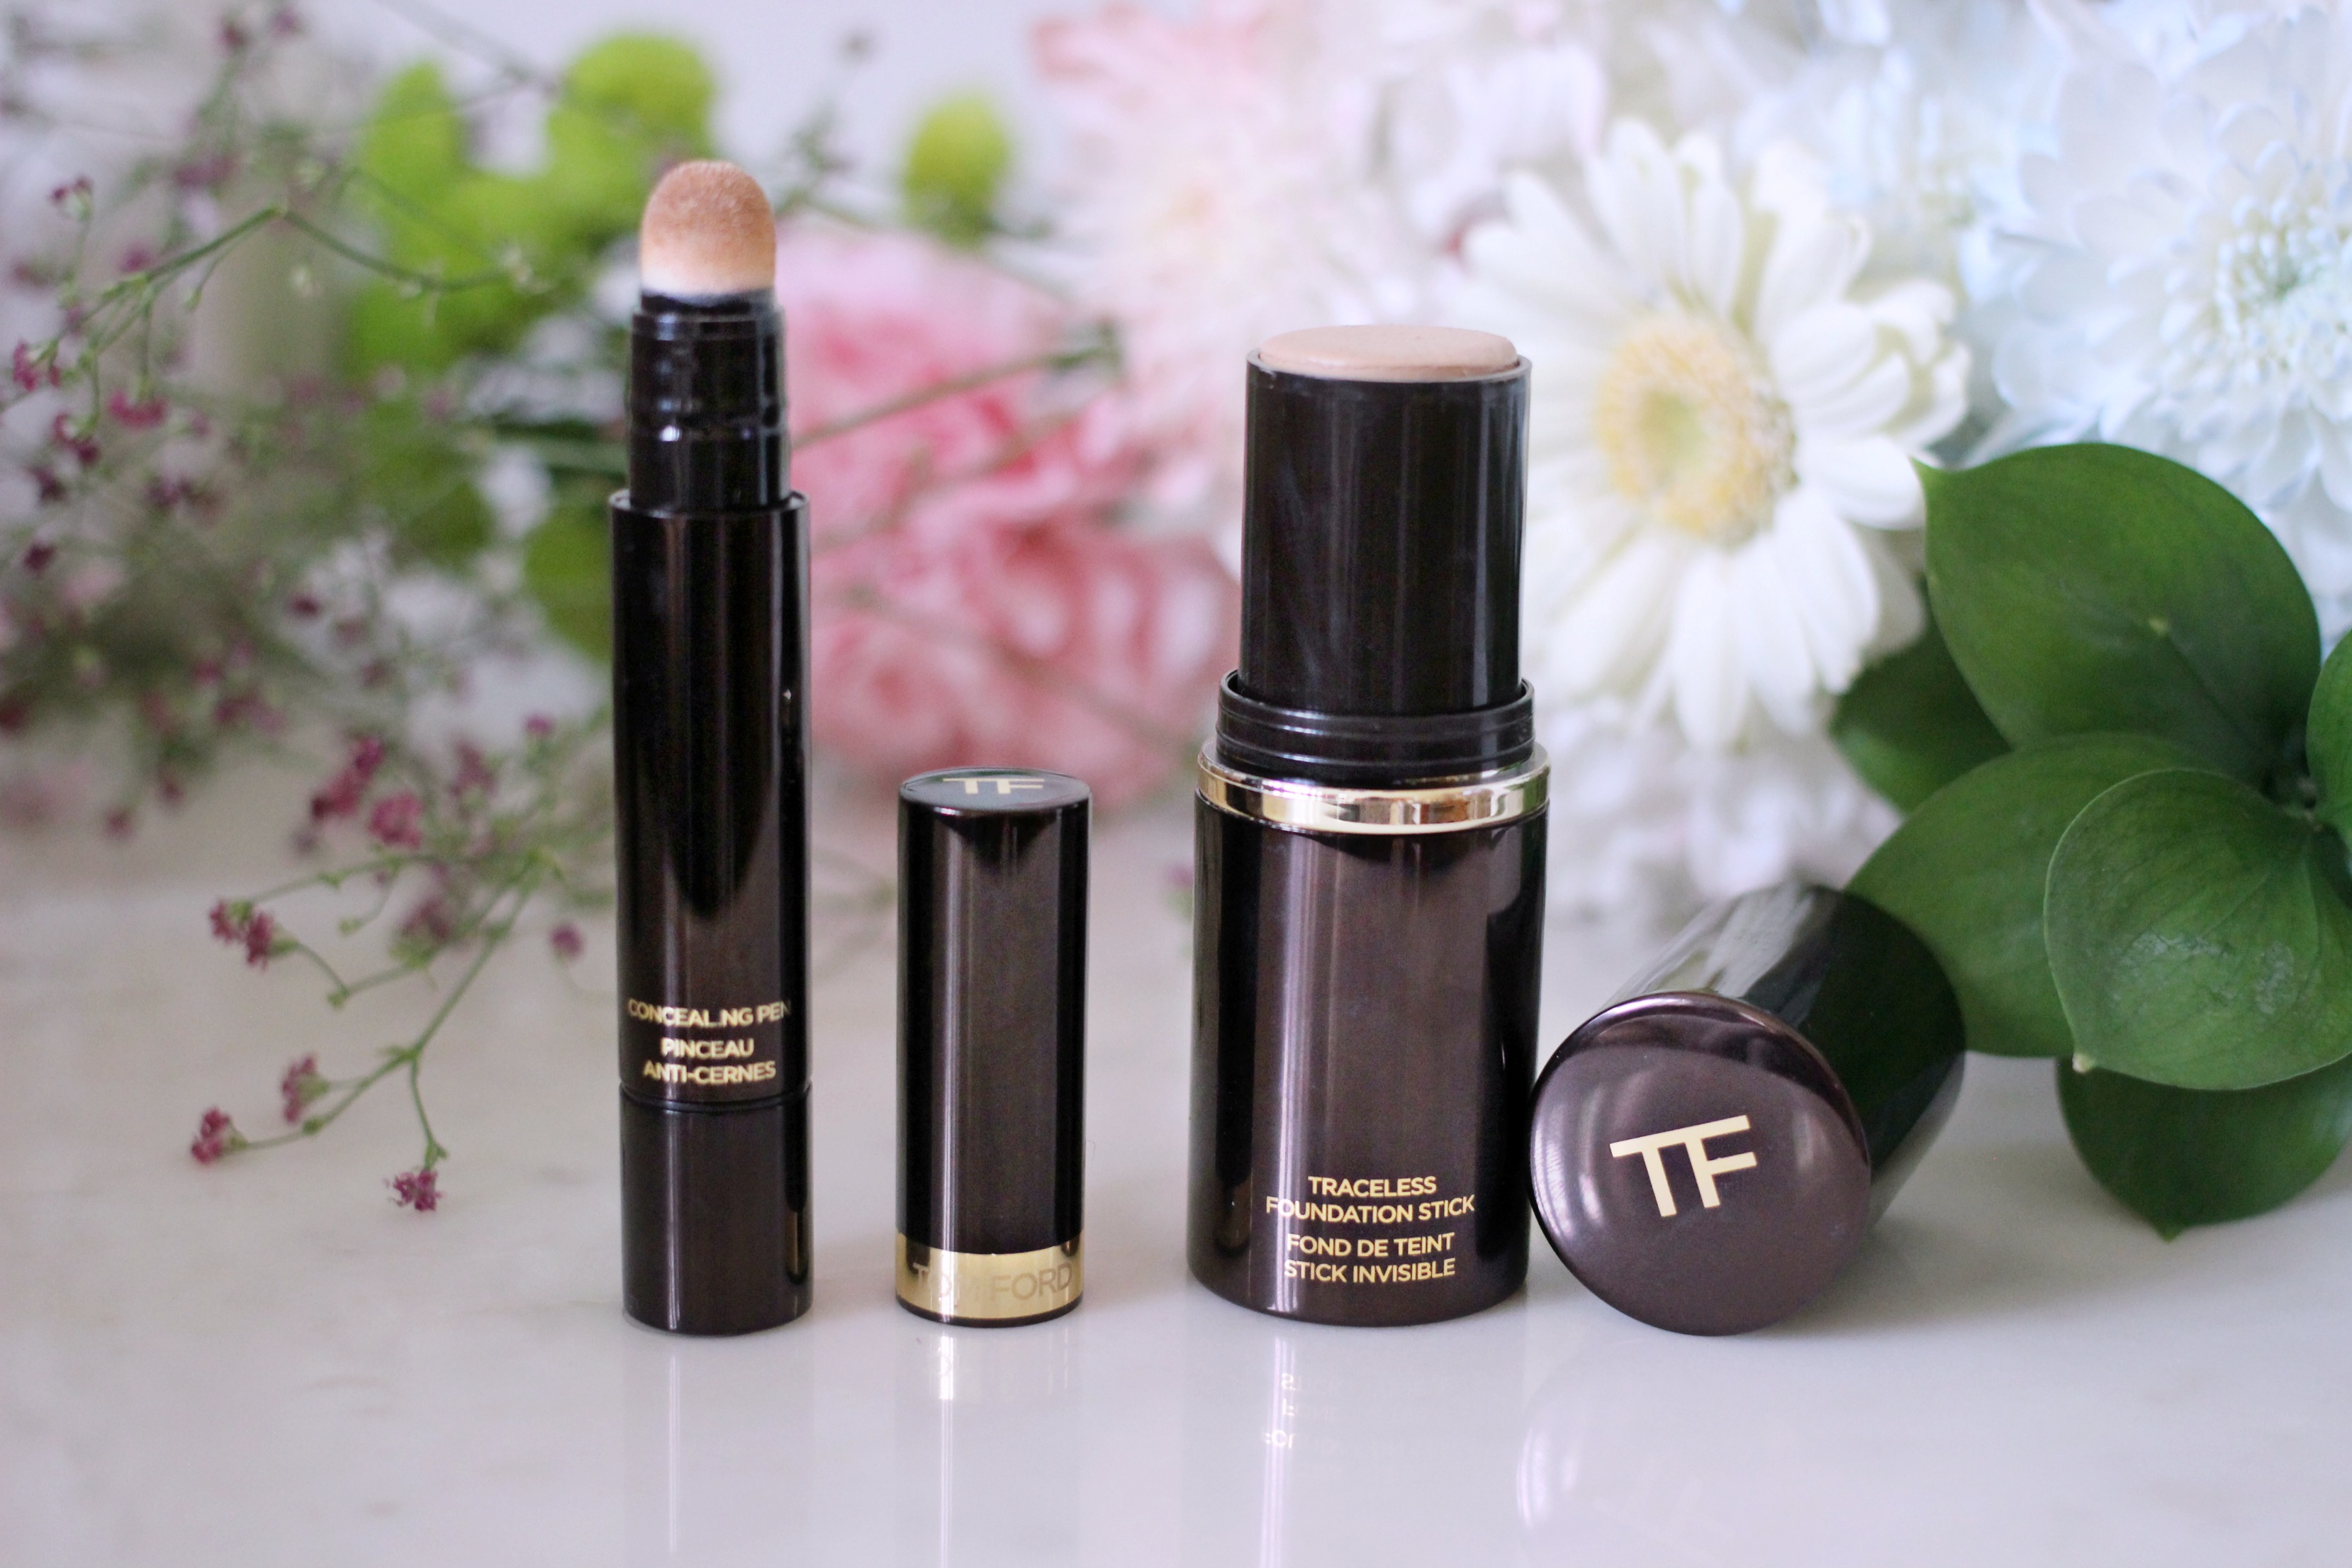 Tom Ford Spring Summer 2016 Beauty Makeup Collection -  concealer